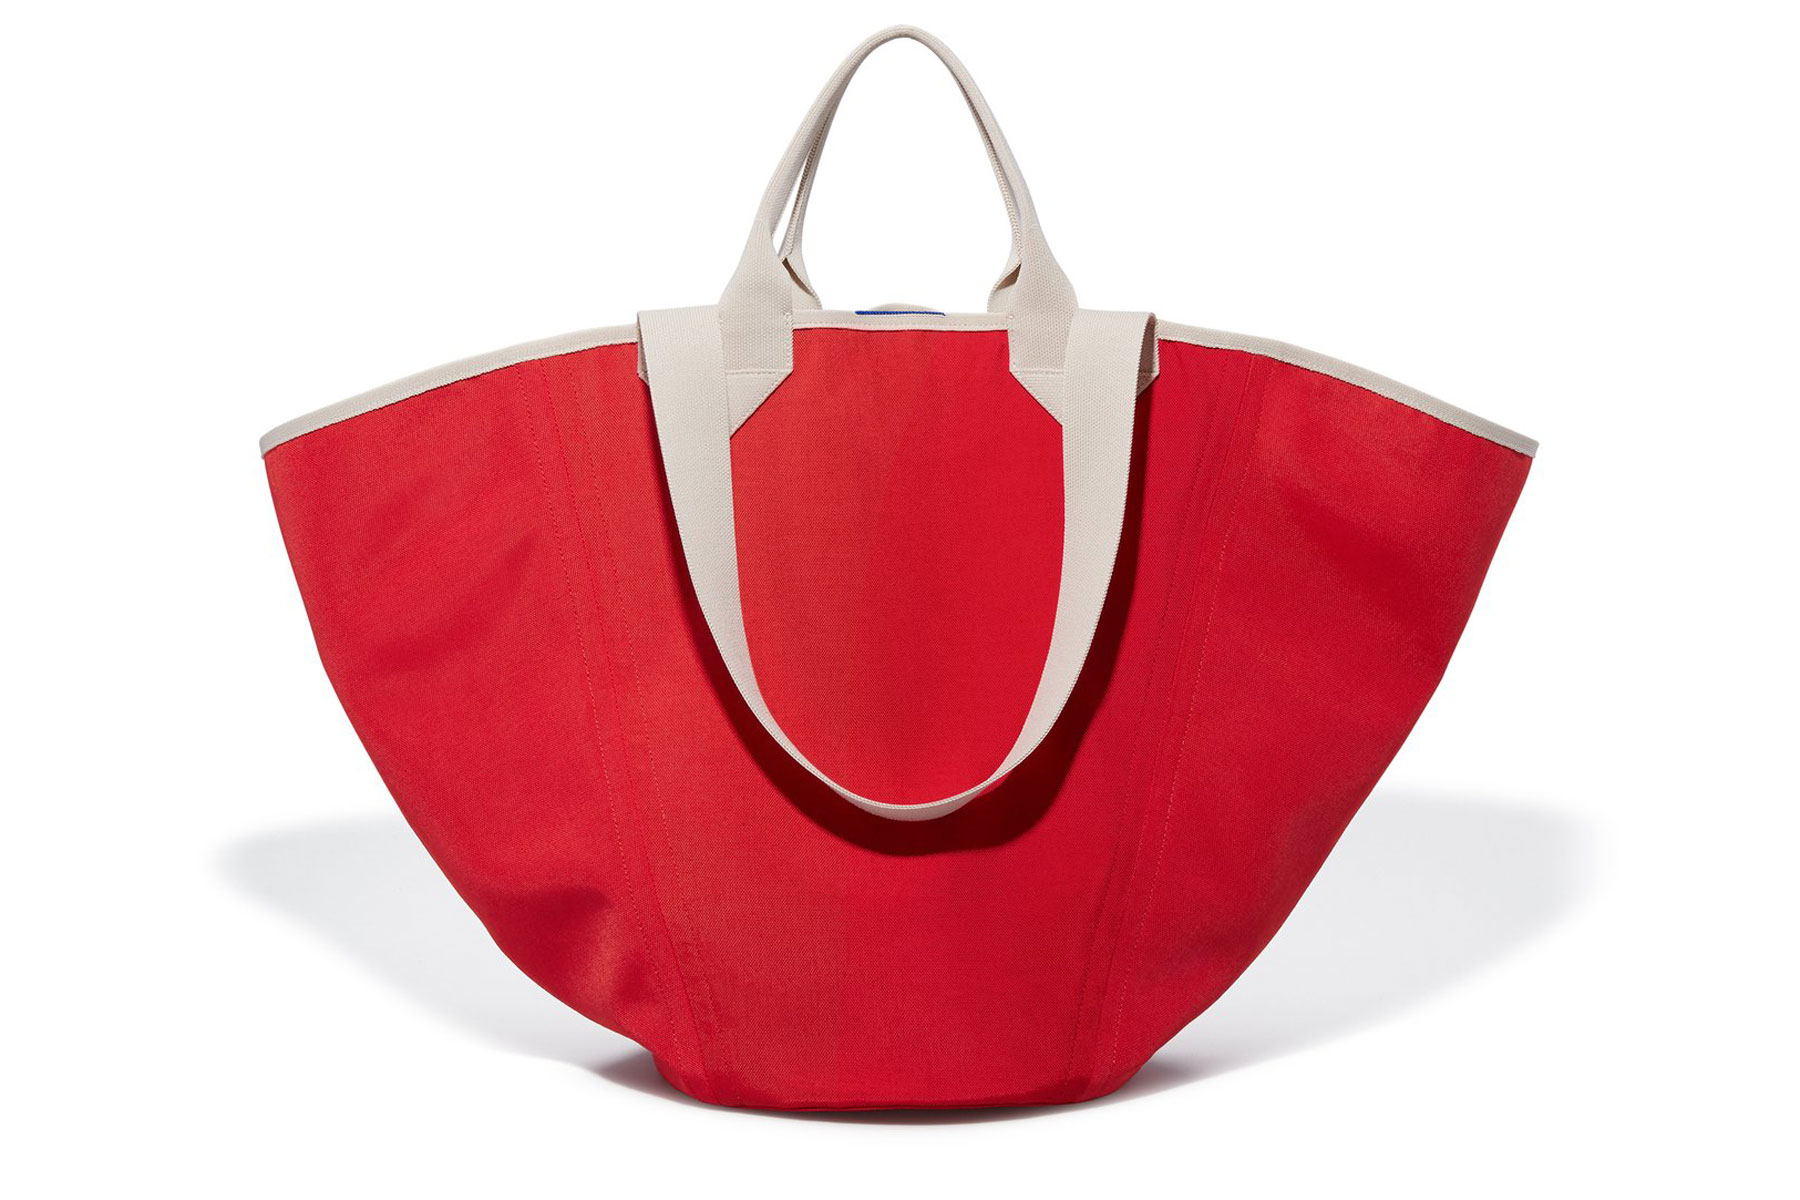 Red canvas tote bag